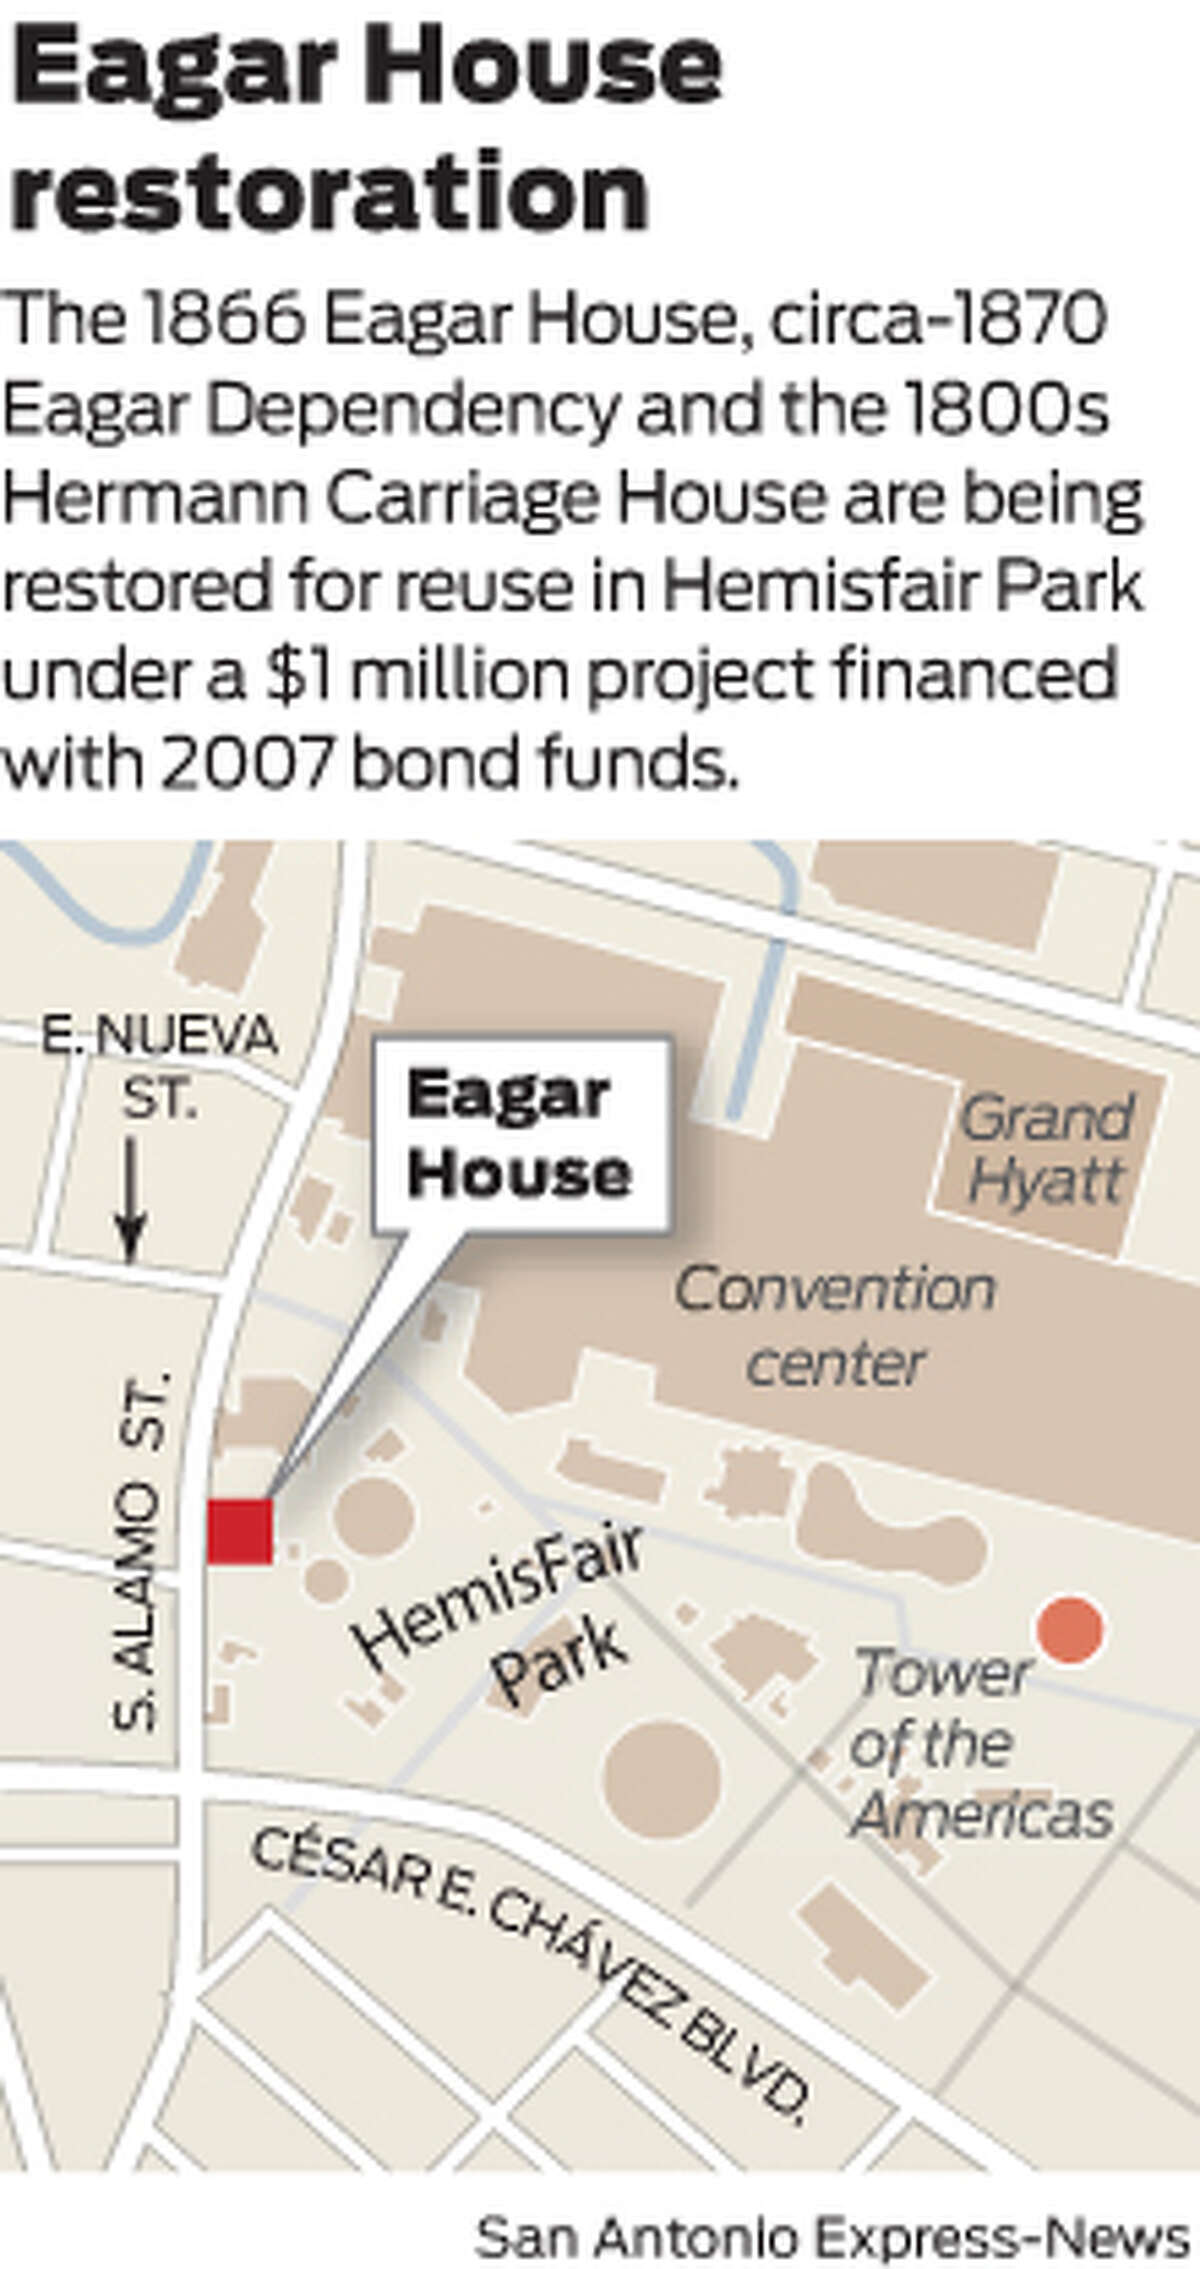 The 1866 Eagar House, circa-1870 Eagar Dependency and the 1800s Hermann Carriage House are being restored for reuse in Hemisfair Park under a $1 million project financed with 2007 bond funds.